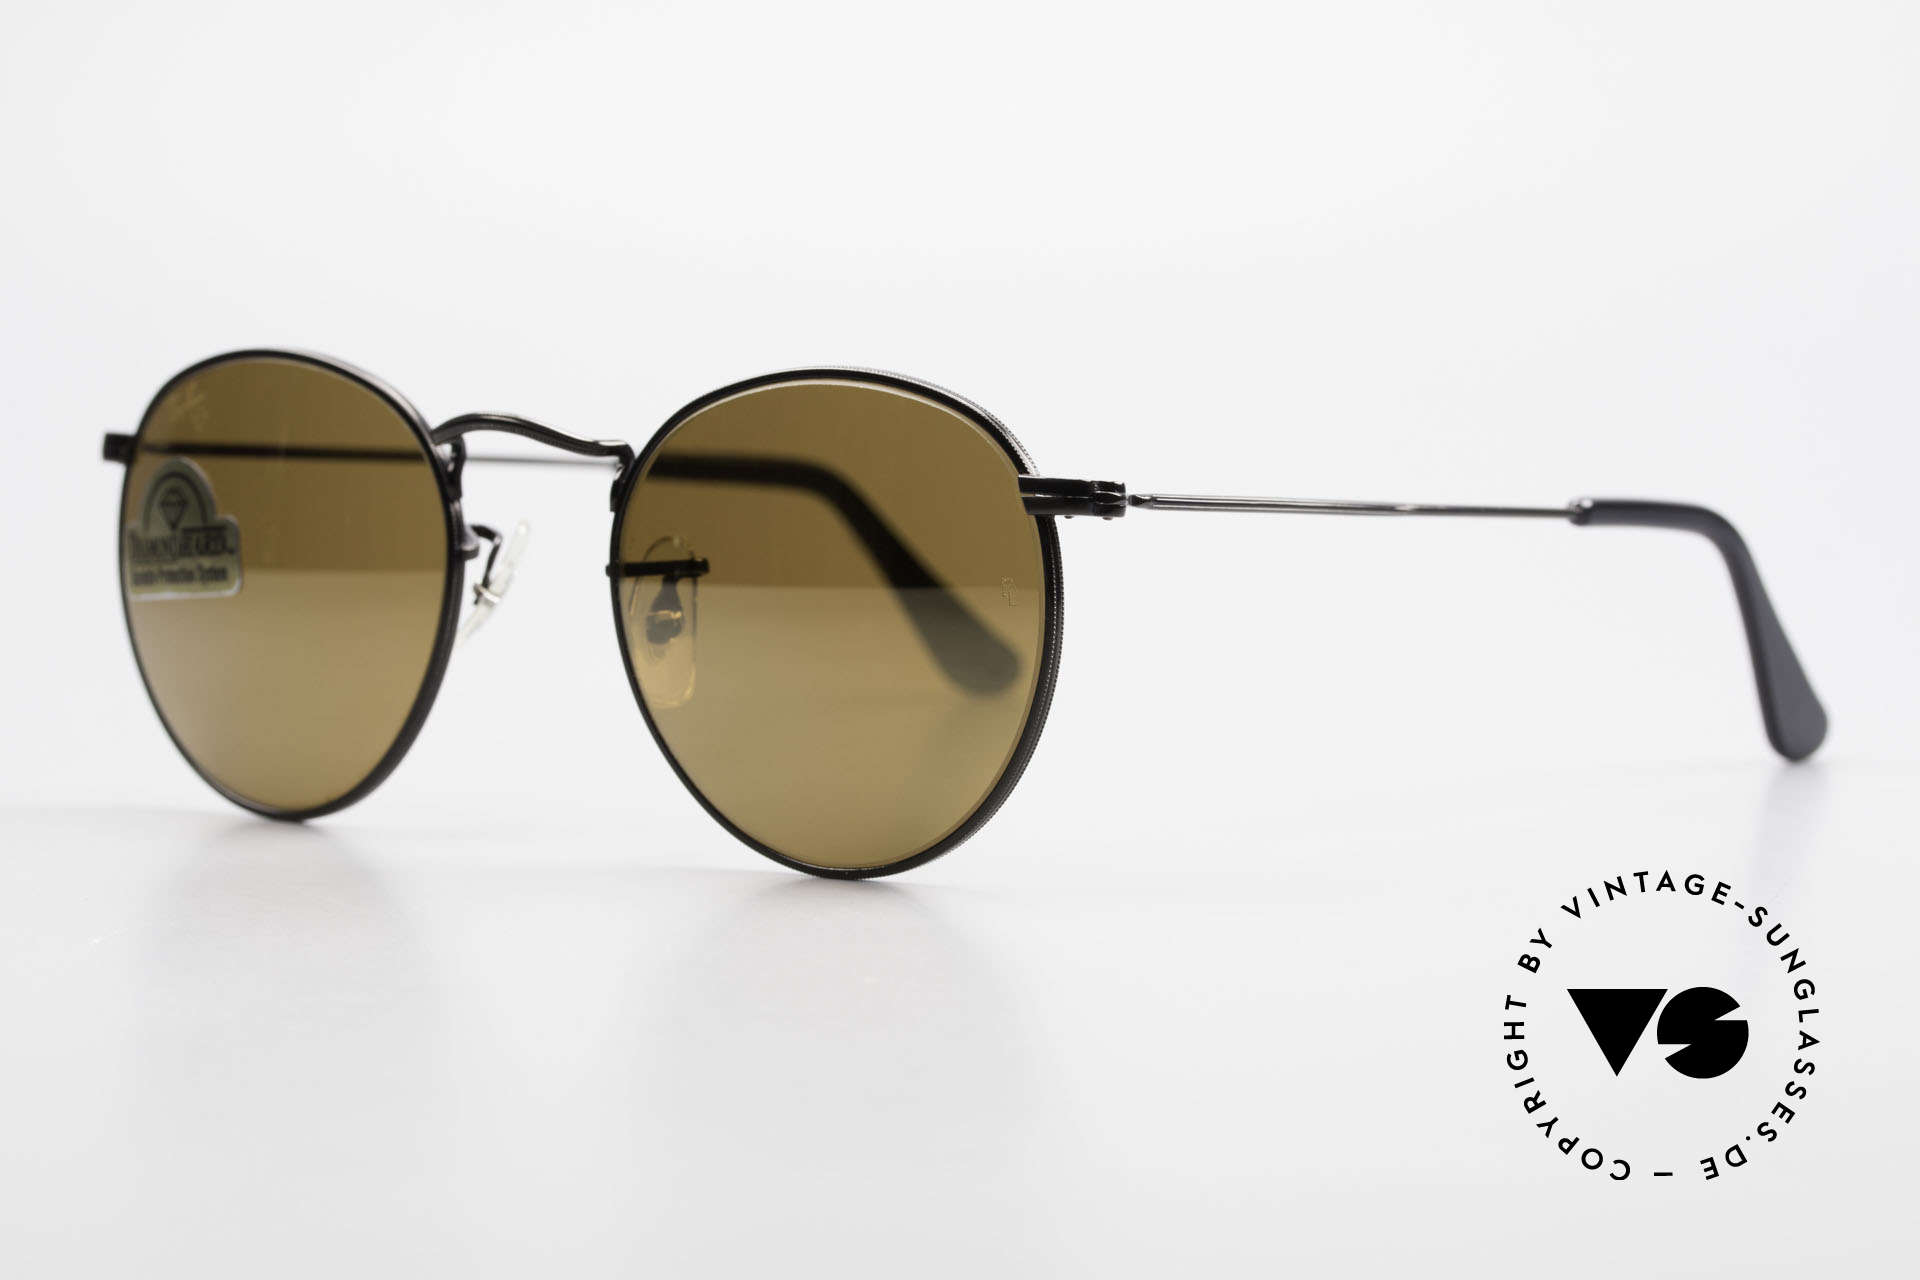 Ray Ban Round Metal 47 Small Round Diamond Hard, limited special edition: DIAMOND HARD B&L lenses, Made for Men and Women